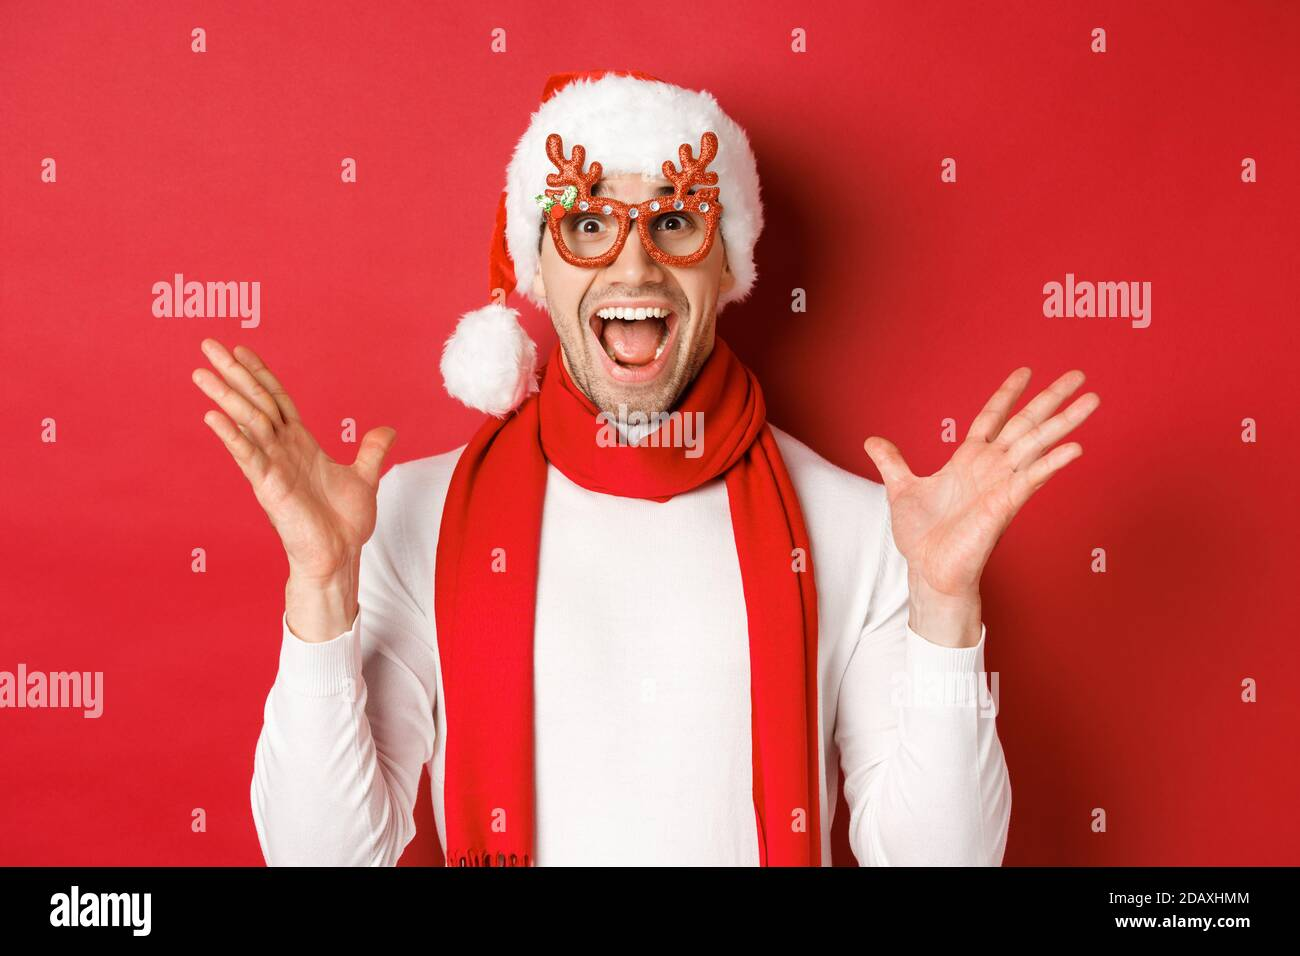 Concept of christmas, winter holidays and celebration. Image of surprised and happy man looking amazed, wearing party glasses and enjoying new year Stock Photo